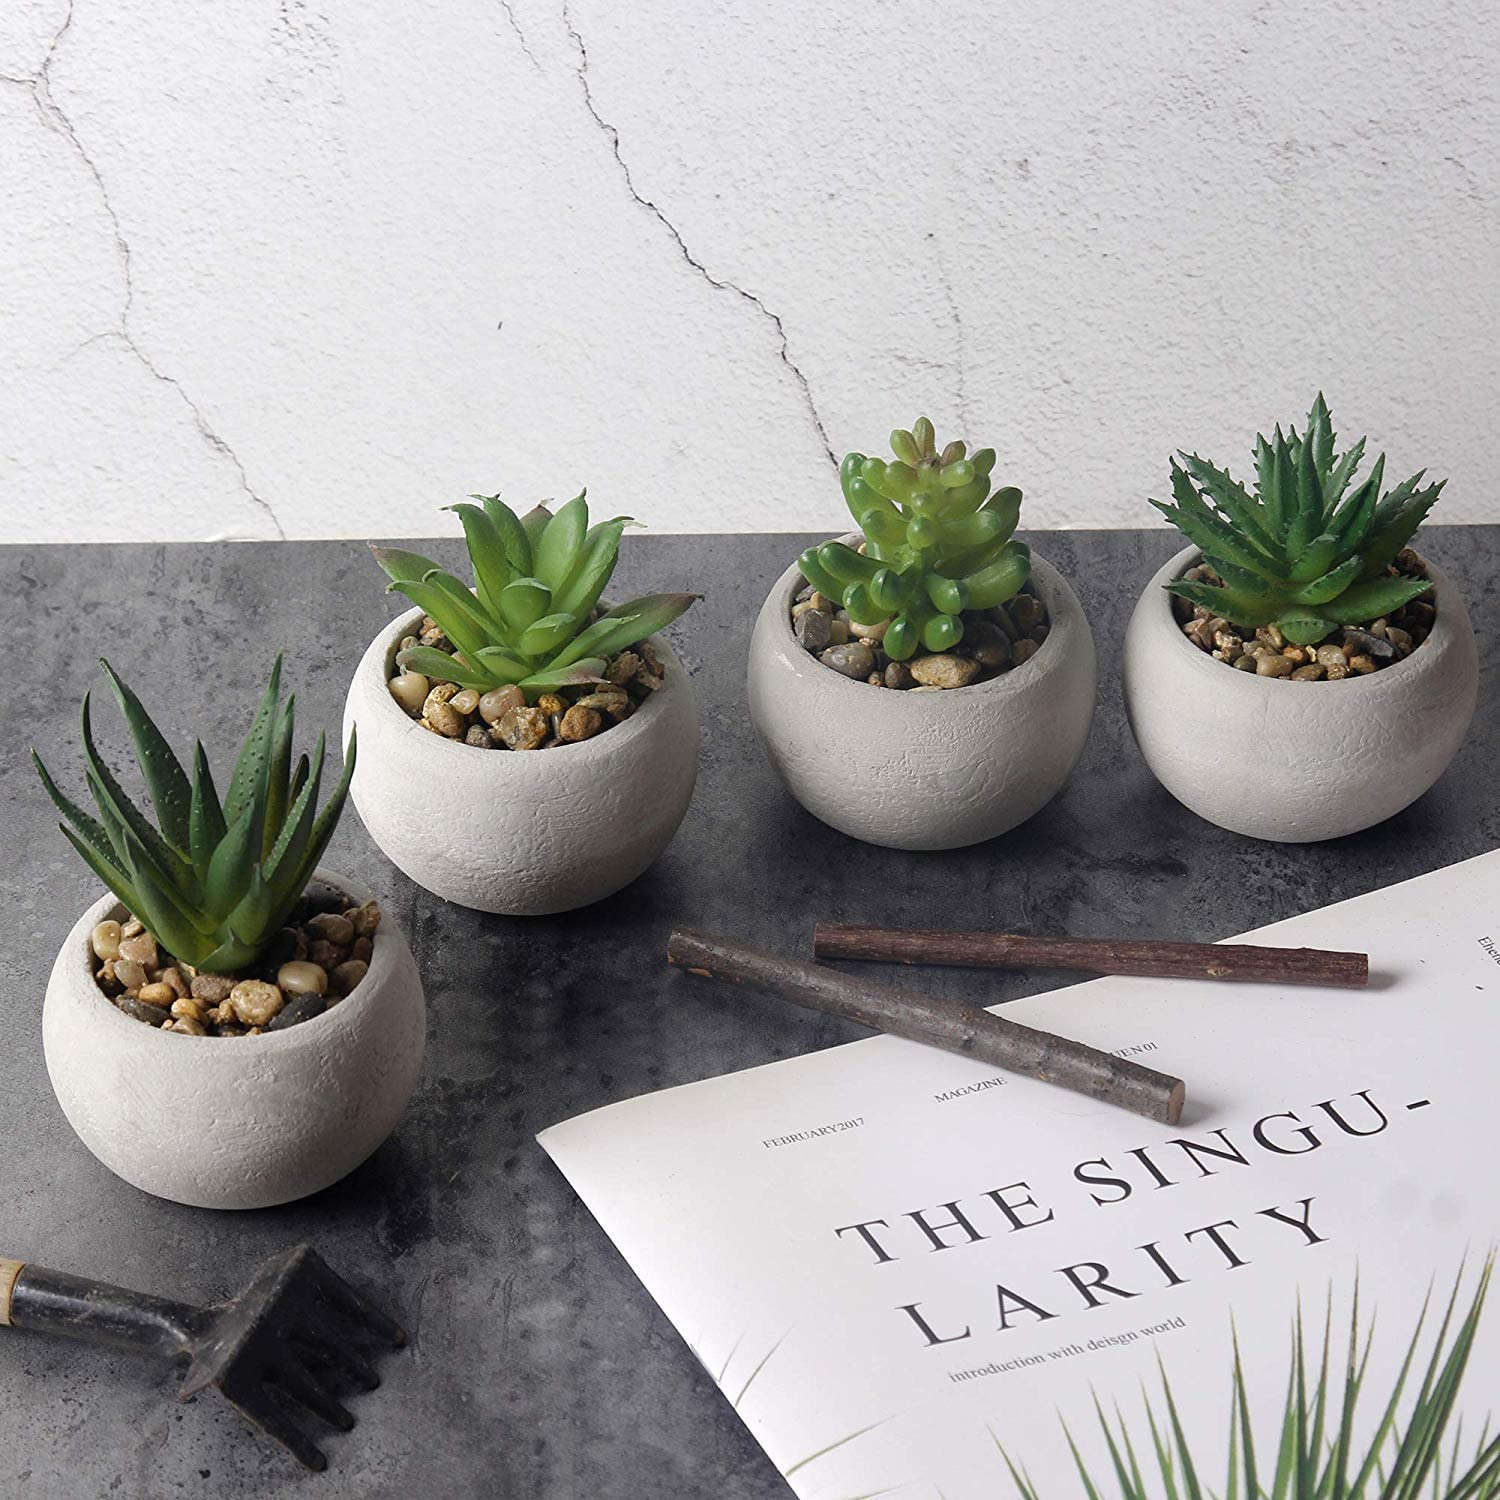 Mini Potted Artificial Succulents/Assorted Decorative Faux Cactus Plants (Set of 4) - for Desk Decor/Indoor/Outdoor/Living Room/Office/Garden/Party